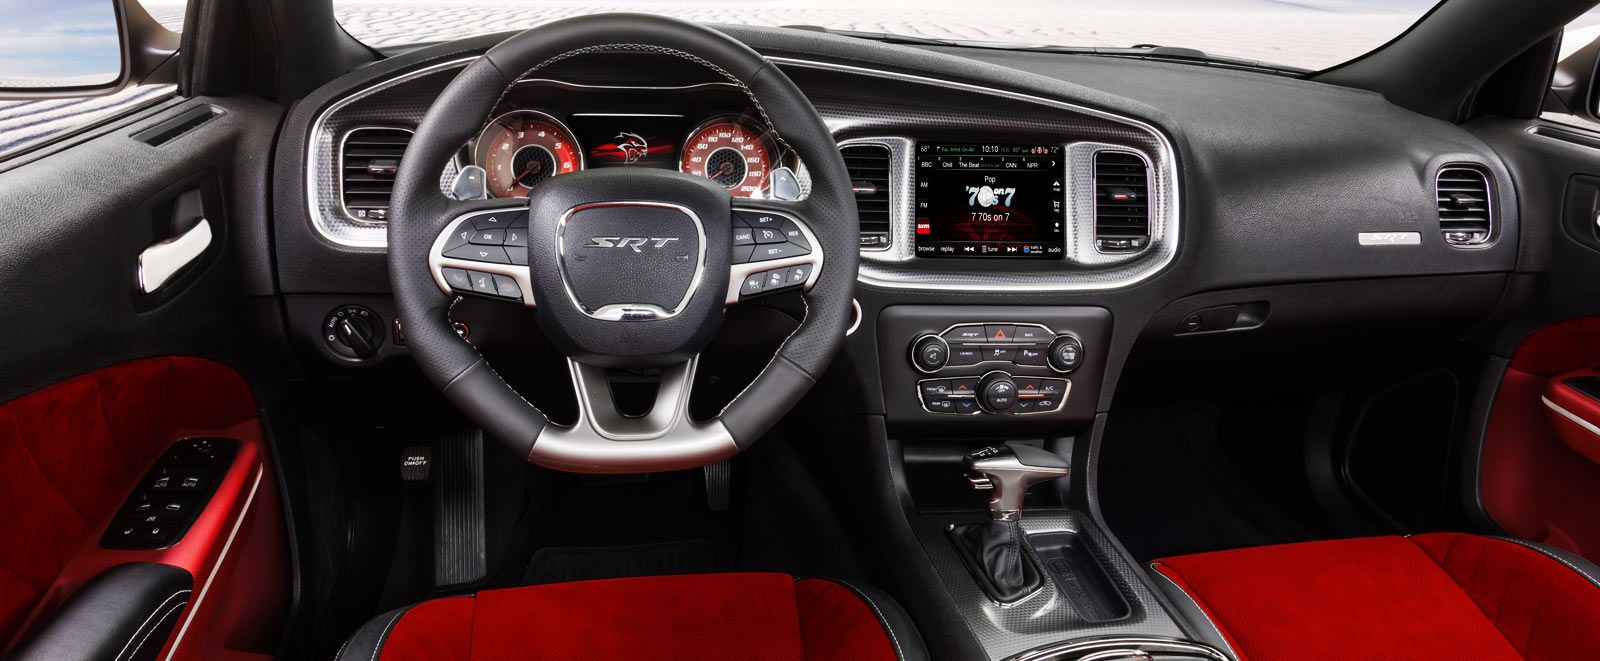 2015 Dodge Charger Srt Hellcat Interior Loving The Black And Red Trim On This One Reminds Us